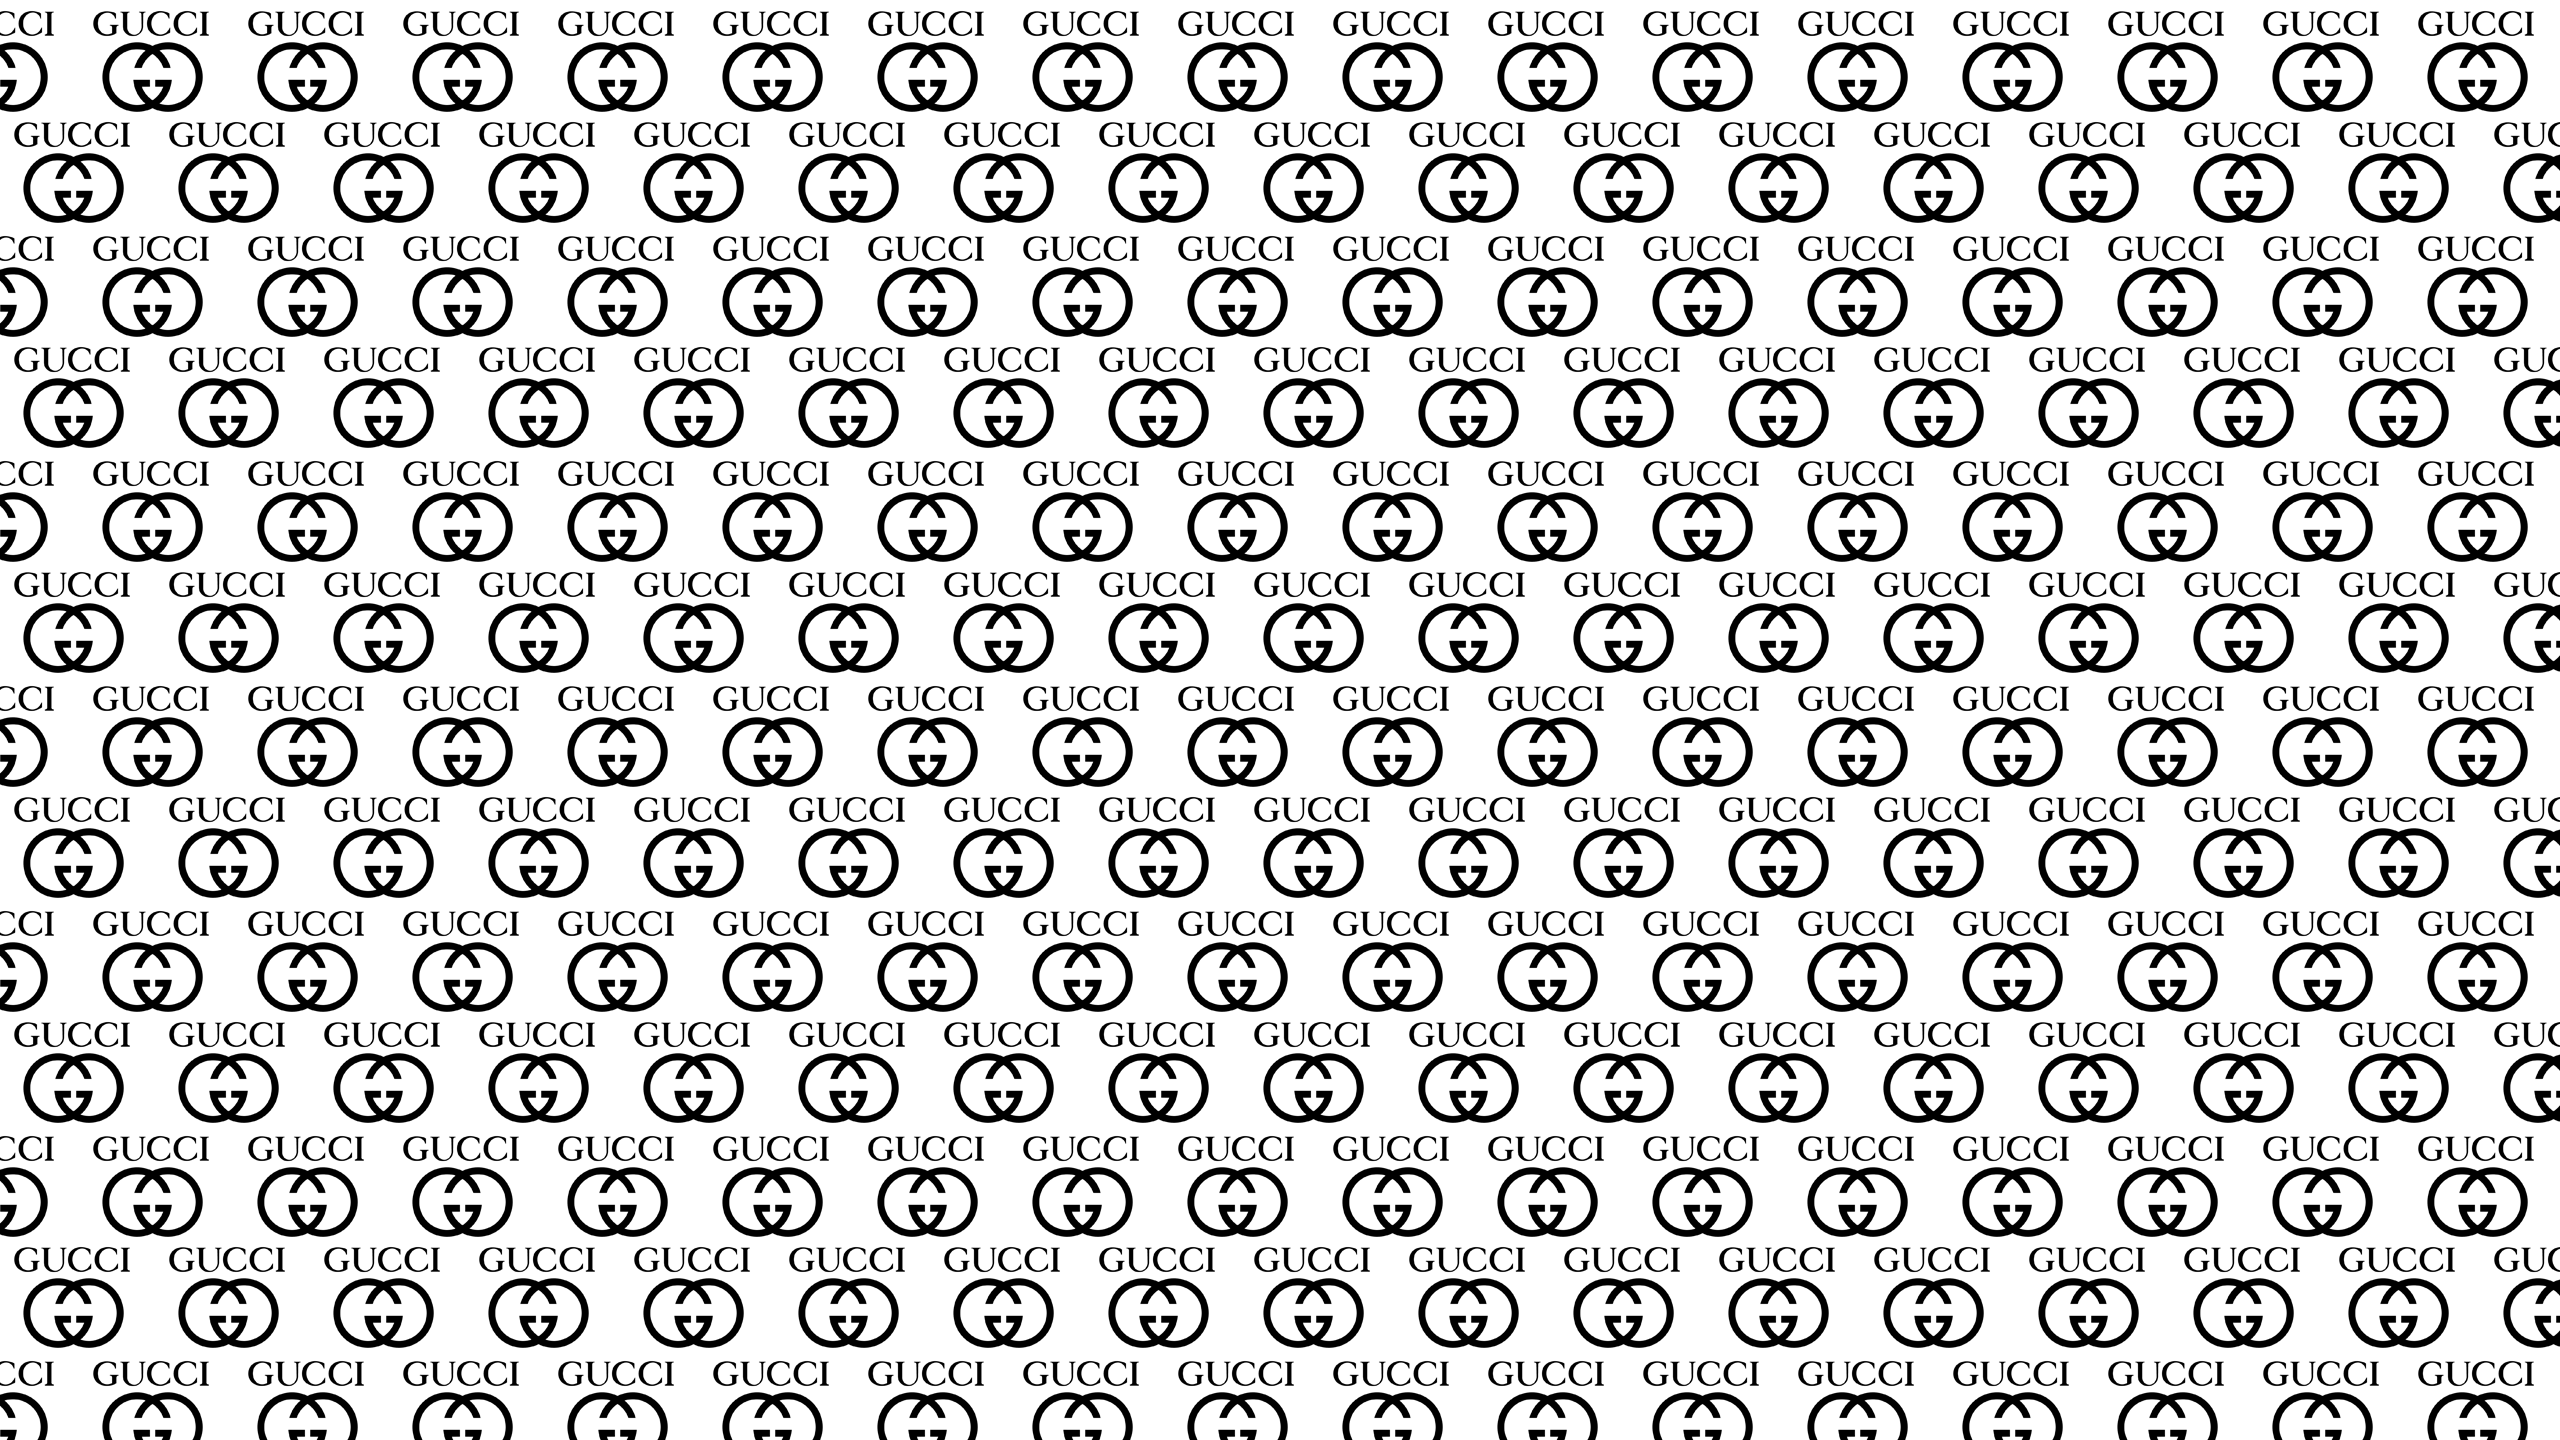 this White Gucci Desktop Wallpaper is easy Just save the wallpaper 2560x1440